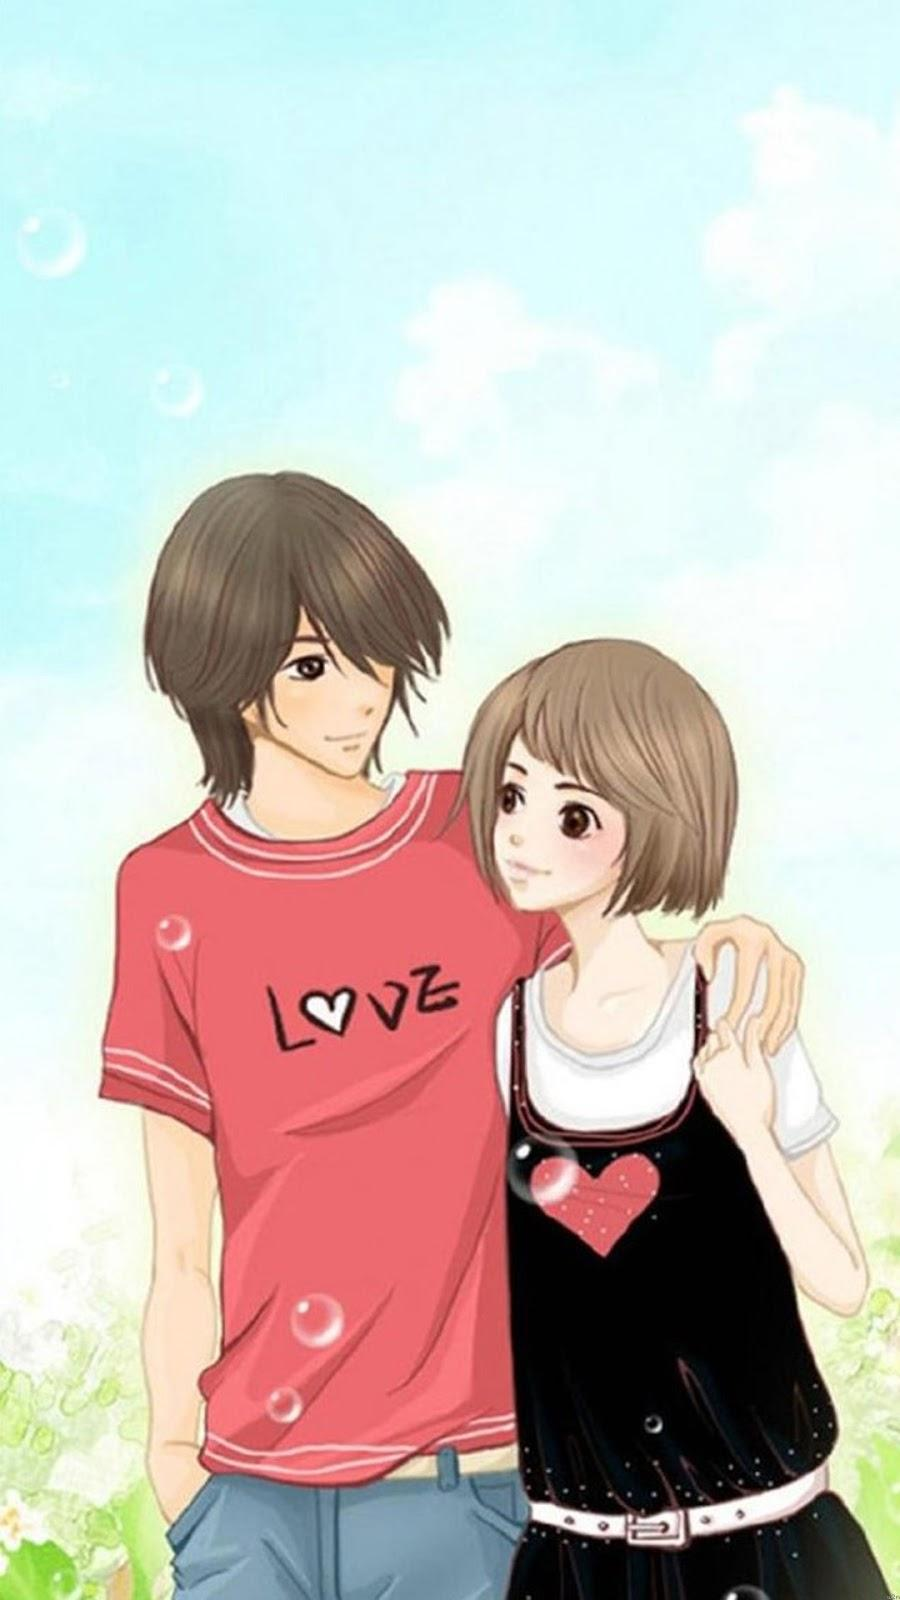 Cute Hd Anime Couple Dp Wallpapers Wallpaper Cave